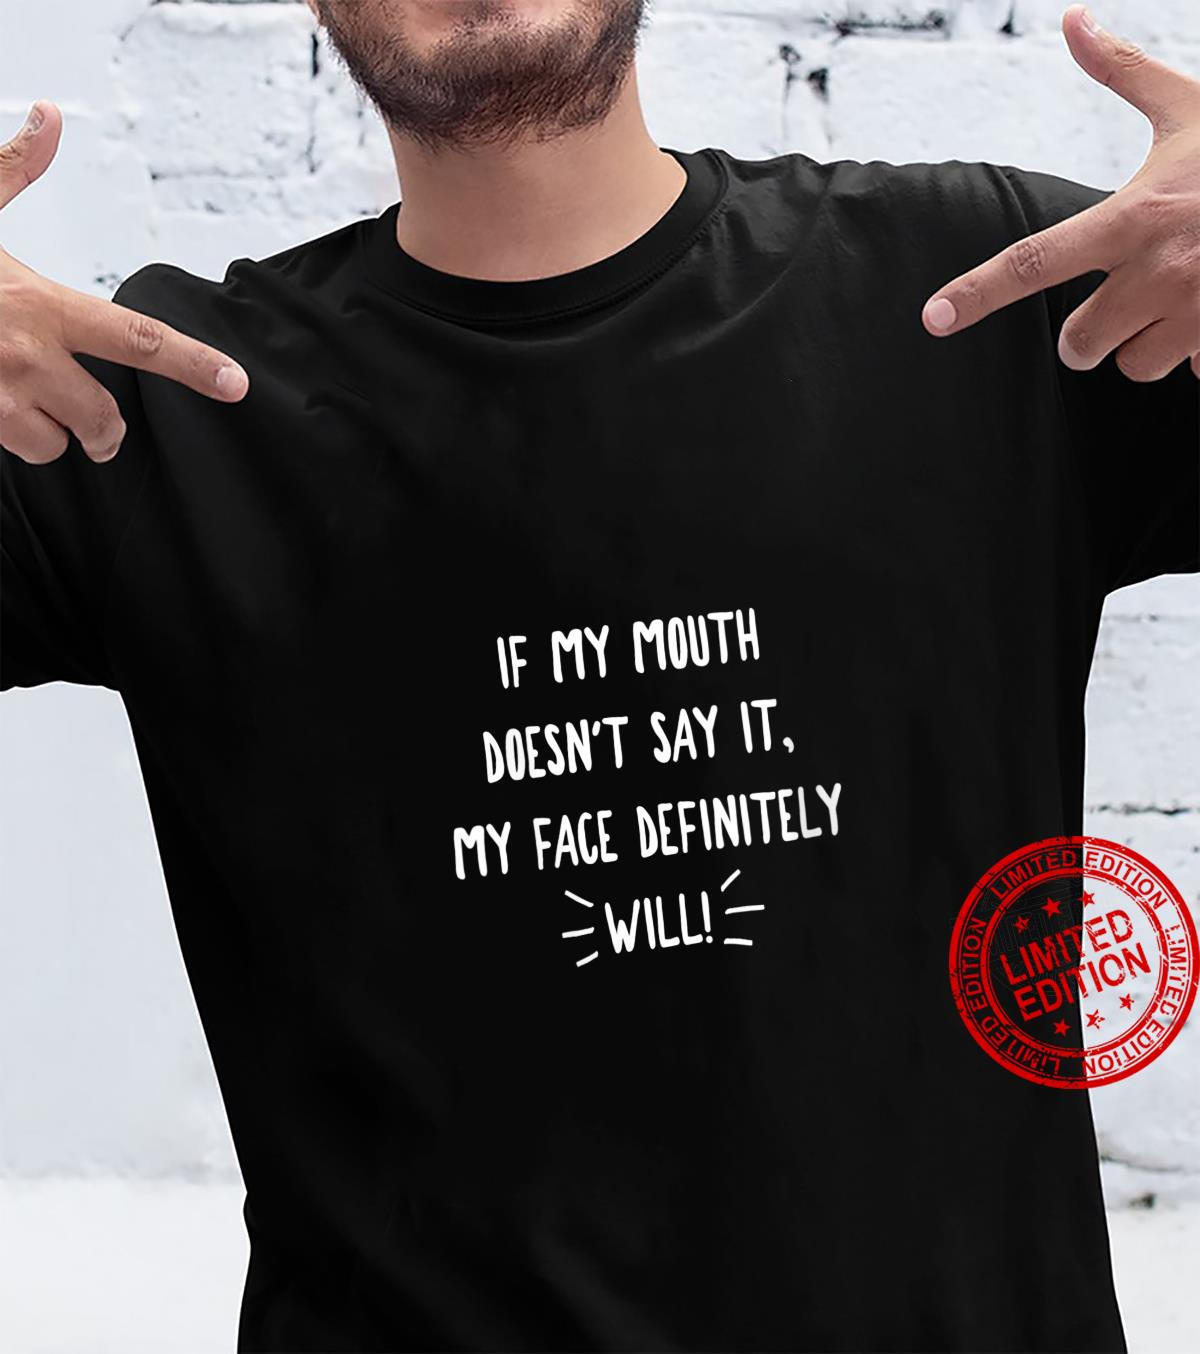 Womens If My Mouth Doesn't Say It My Face Definitely Will, By Yoray Shirt